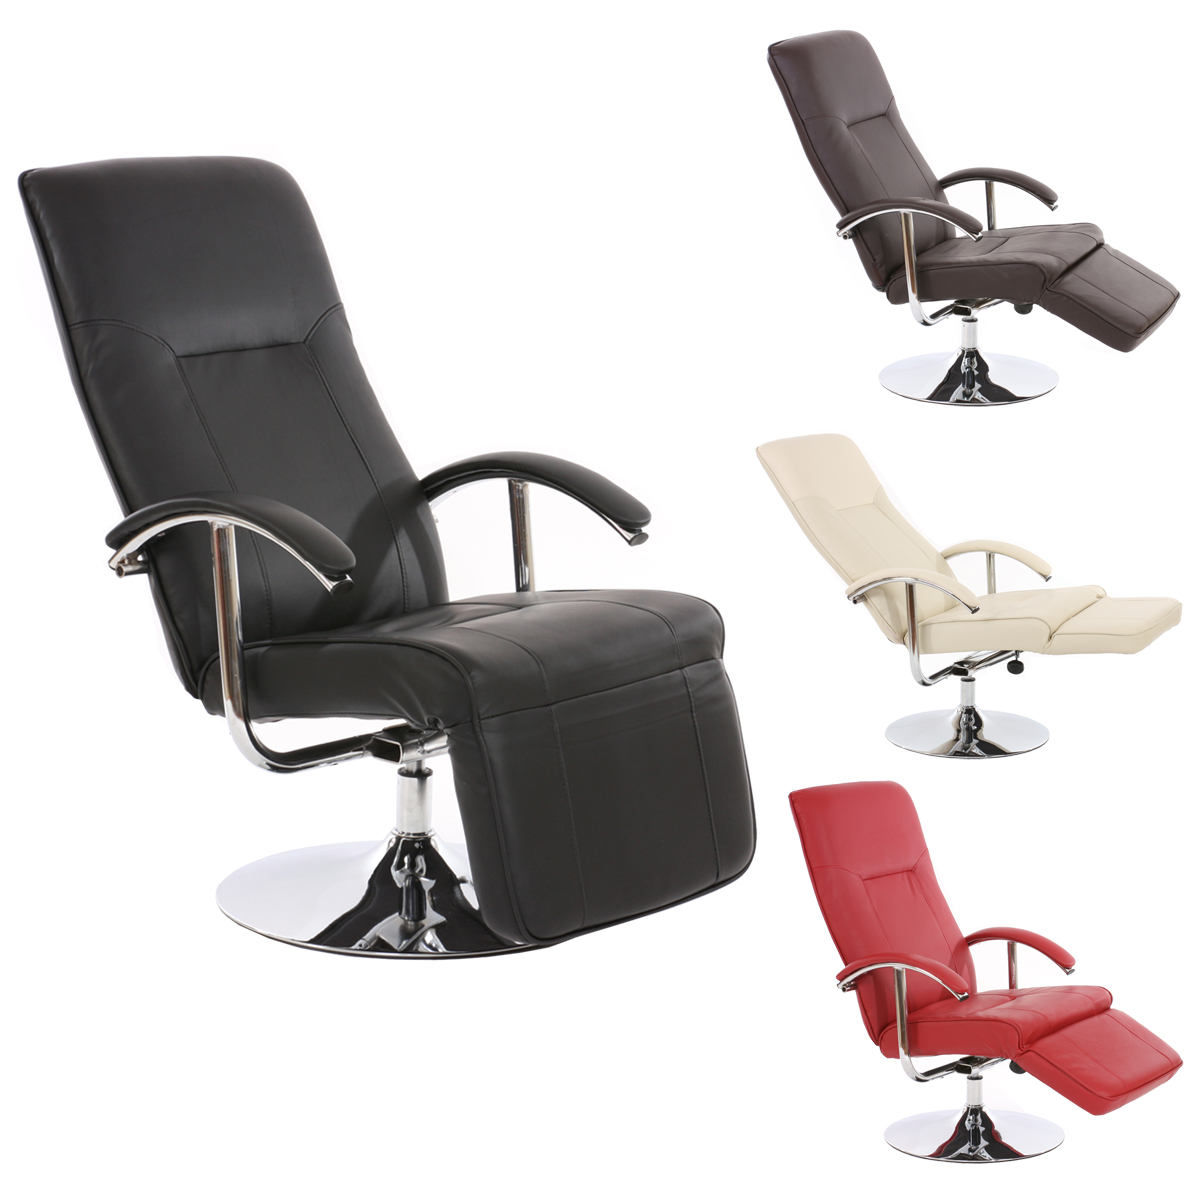 Relaxsesse Relaxliege Relaxsessel Apia Ii Leder And Kunstleder Braun